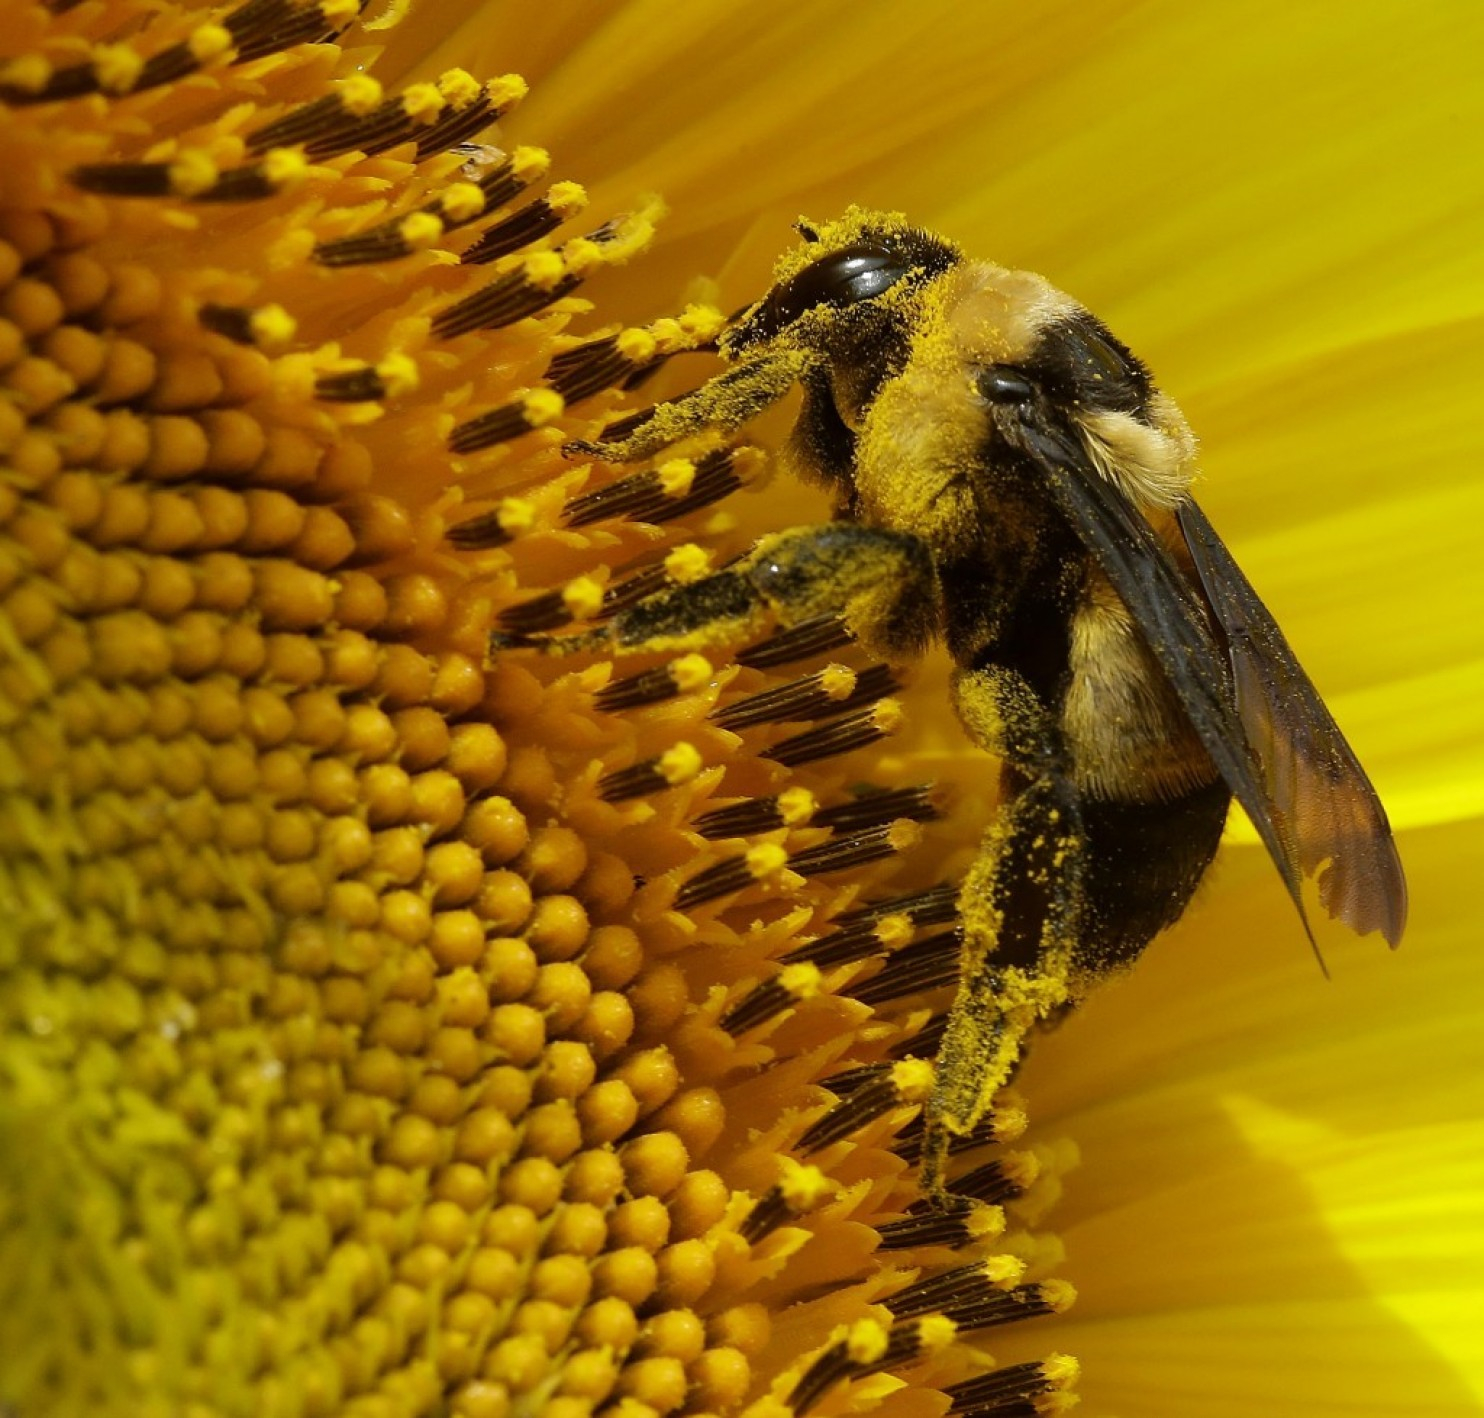 The Ontario Beekeepers' Association is urging the federal government to ban neonicotinoid pesticides. File photo by the Associated Press